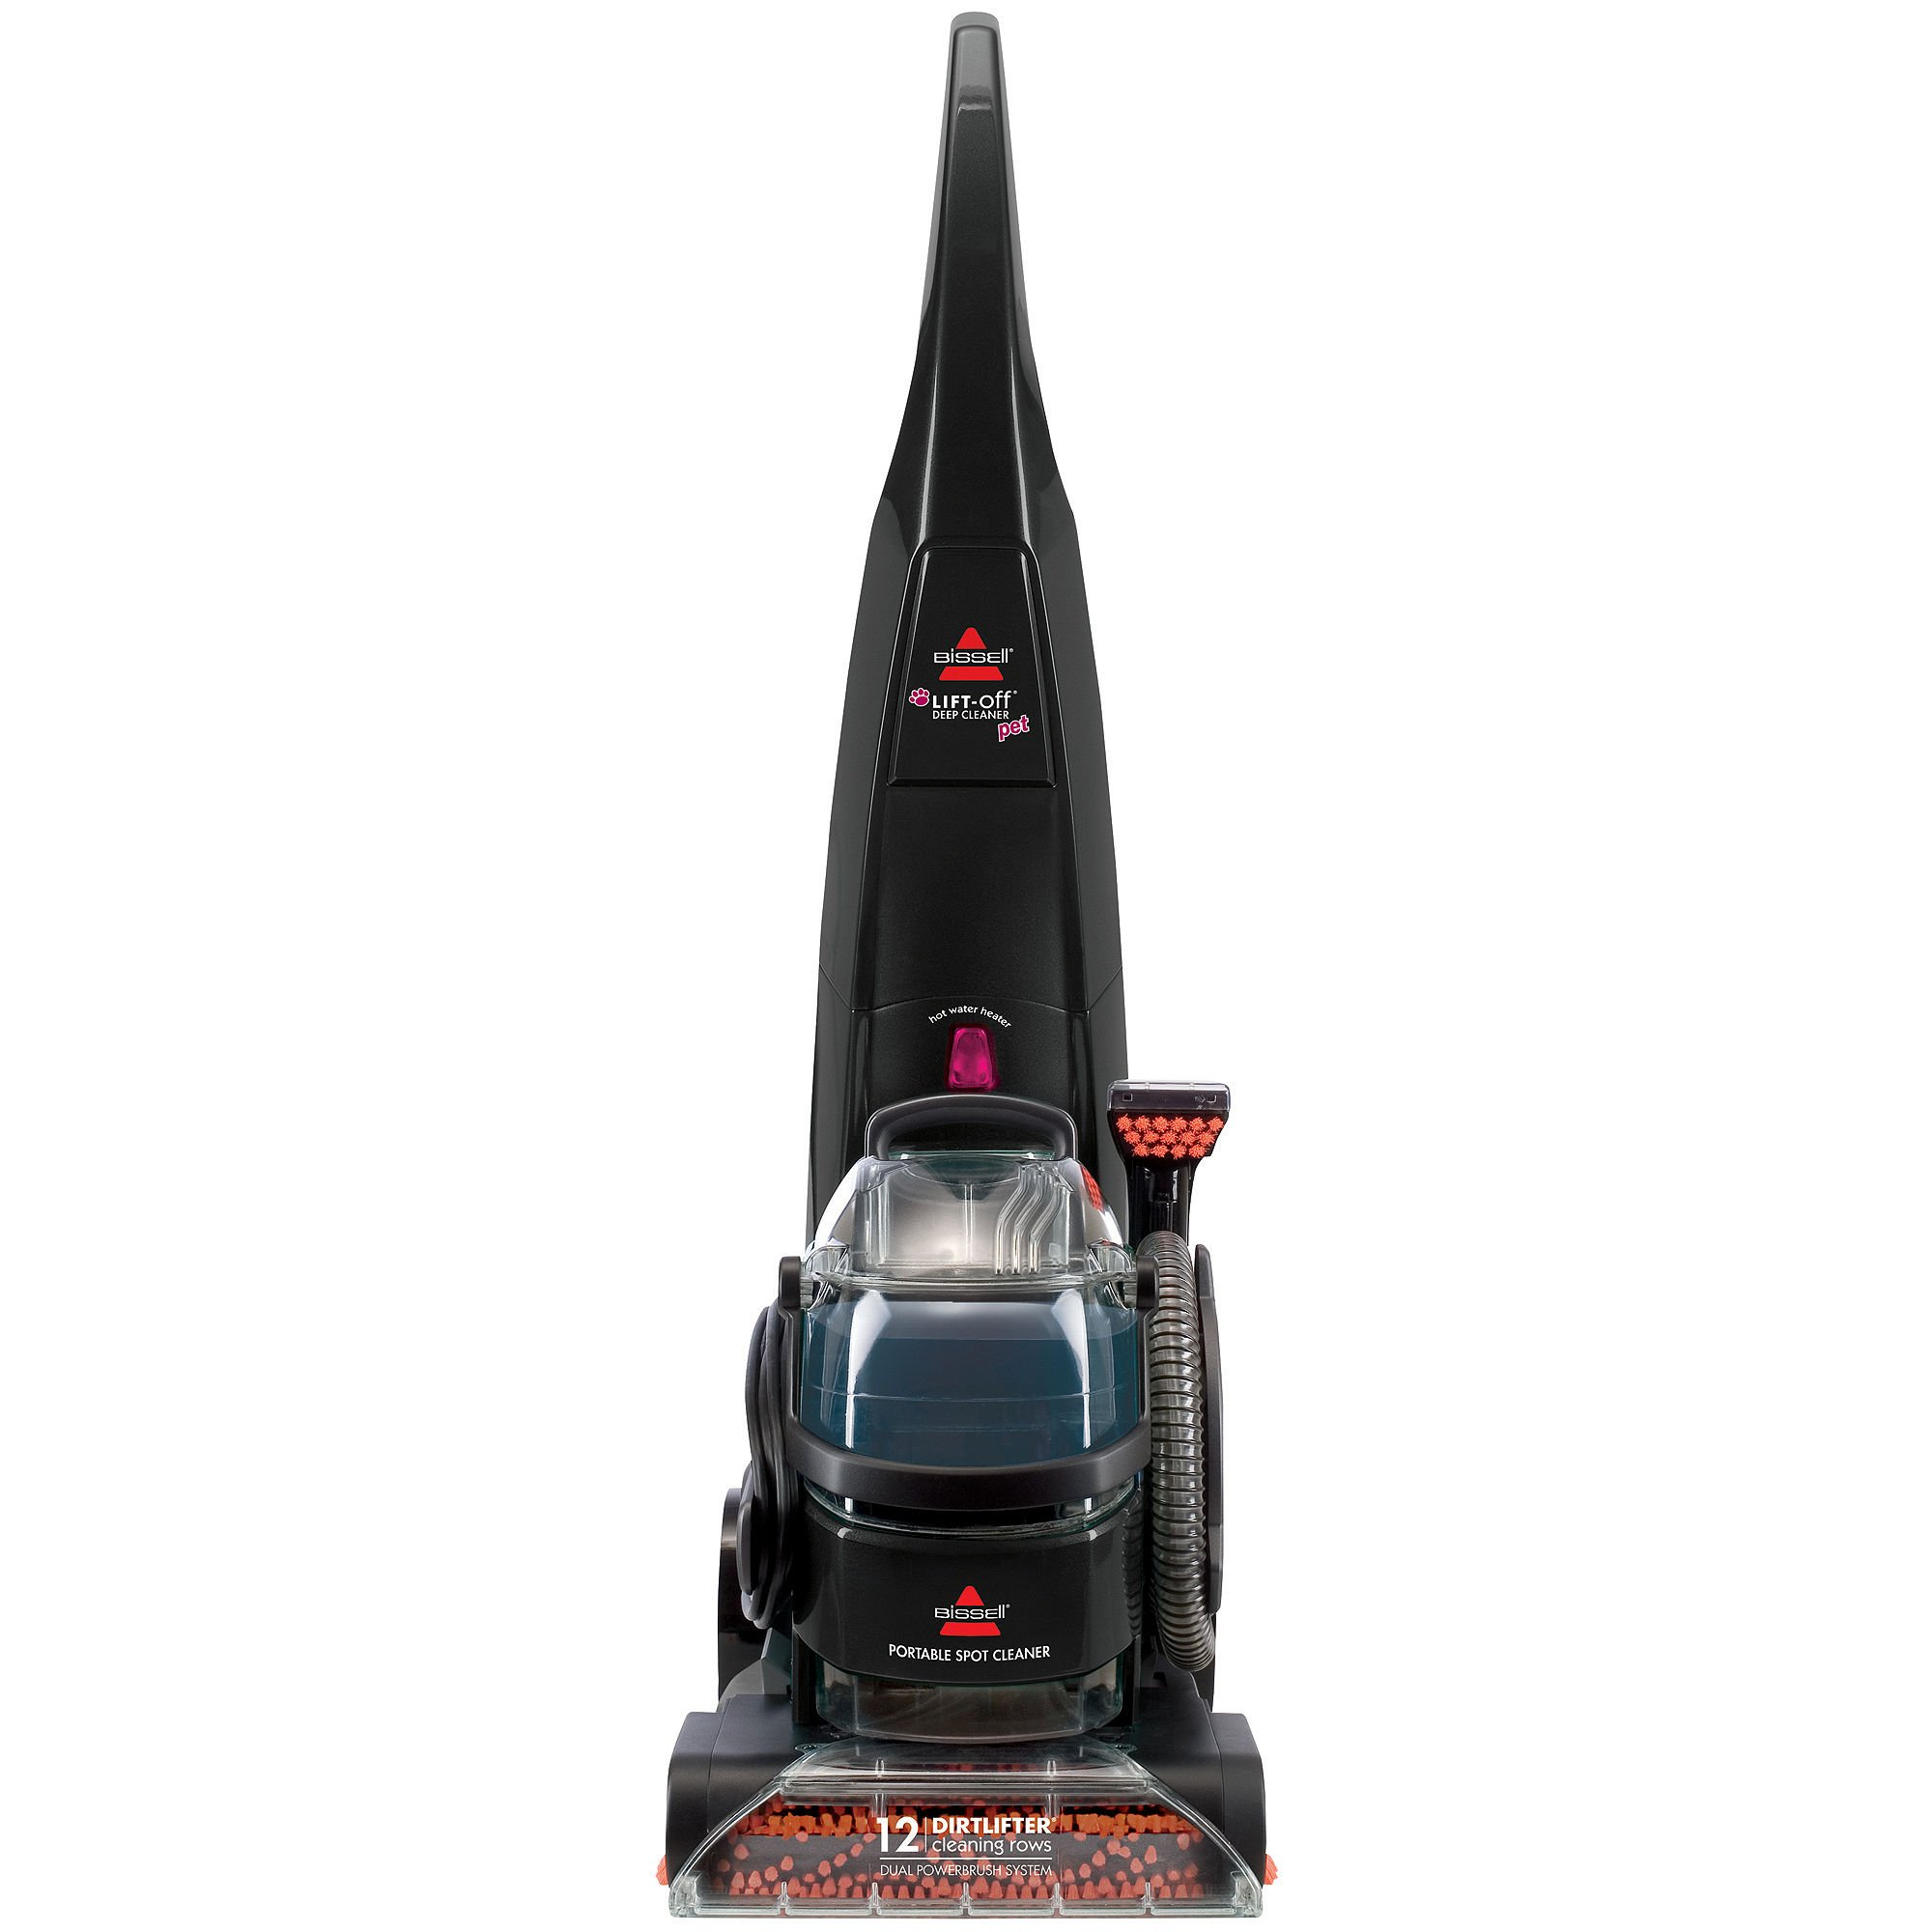 Bissell DeepClean Lift-Off 66E12 Pet 2-in-1 Spot Cleaner